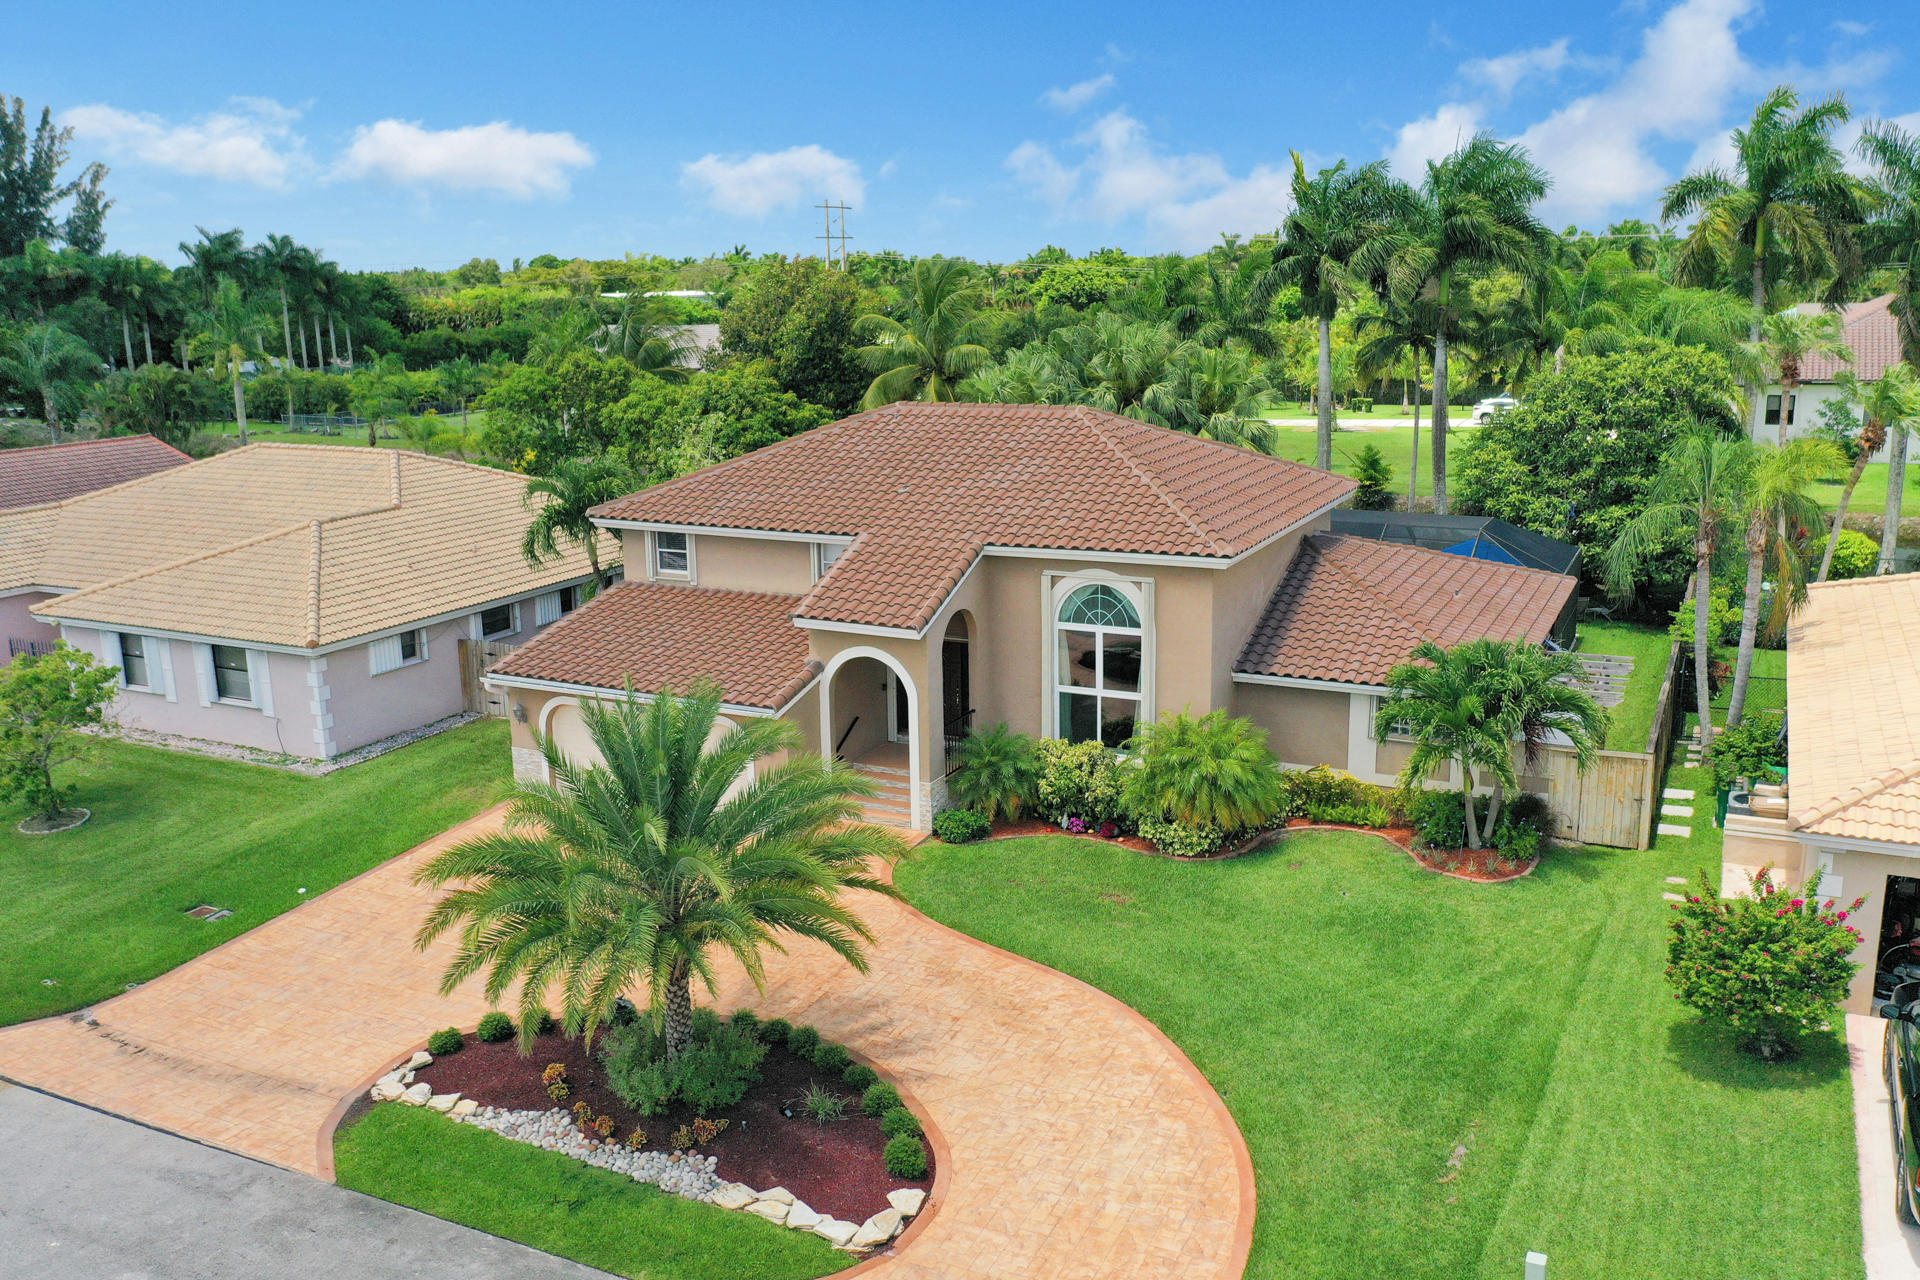 Home for sale in Hawkes Bluff Davie Florida